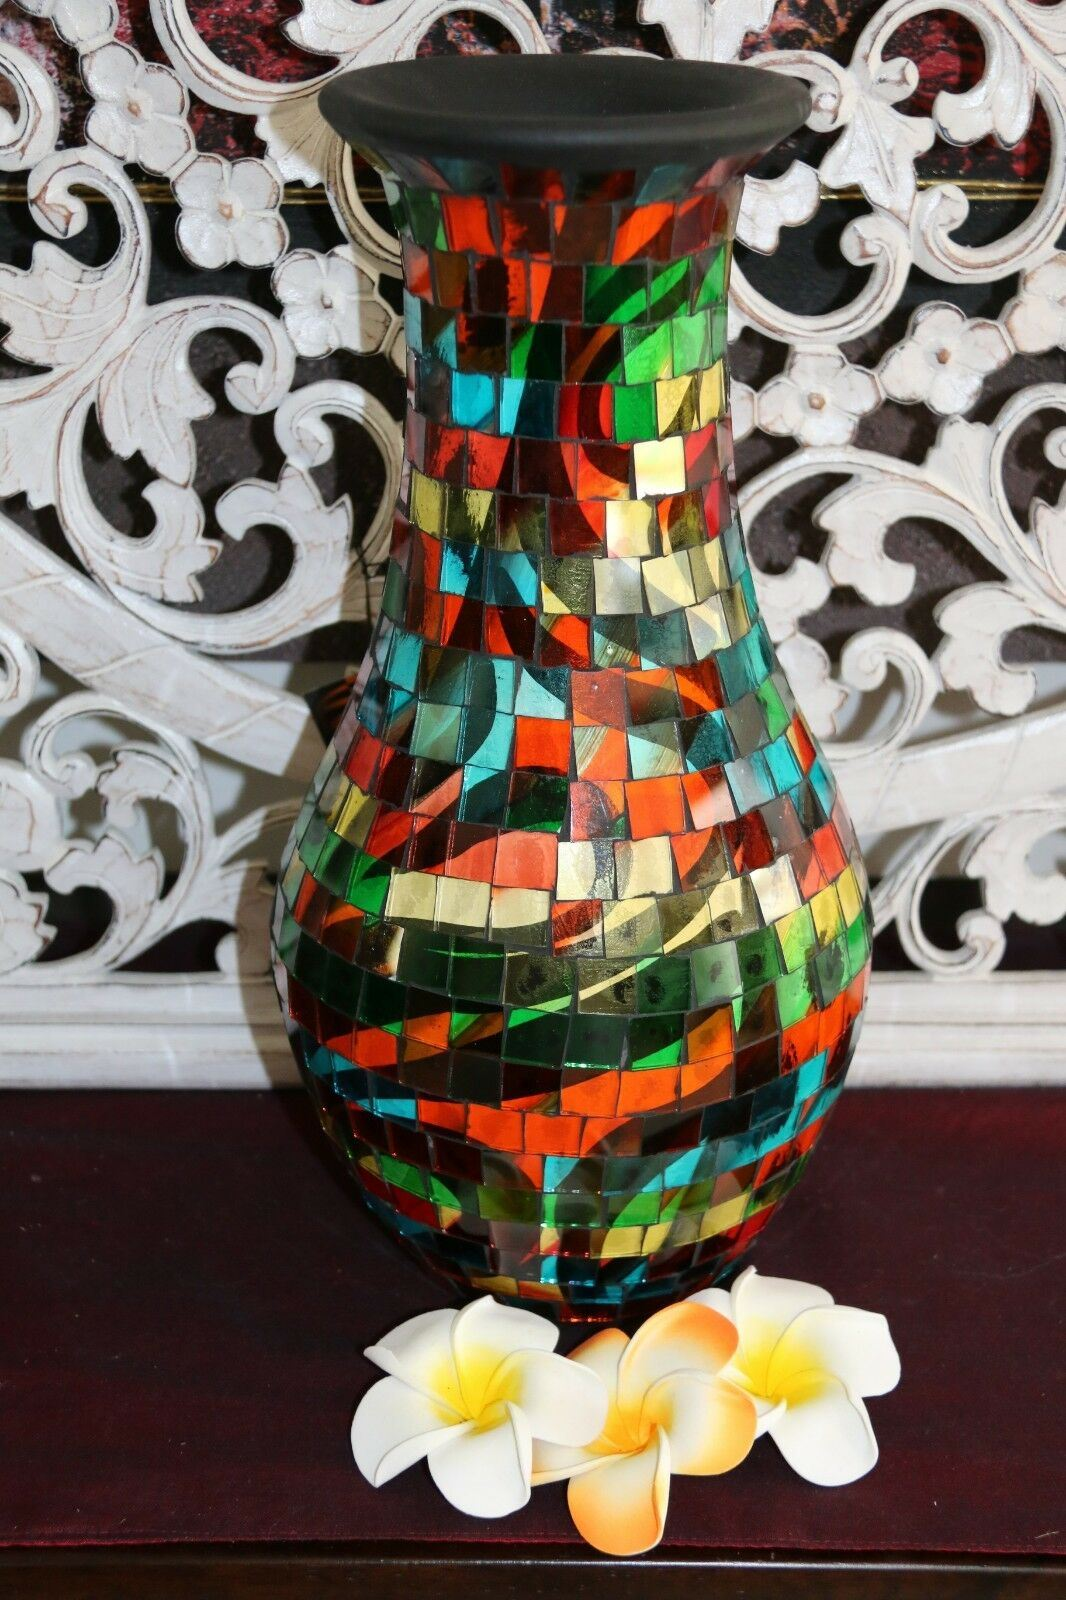 NEW Balinese Mosaic Decorative Vase - 2 Sizes!!  Bali Mosaic Vase Mixed